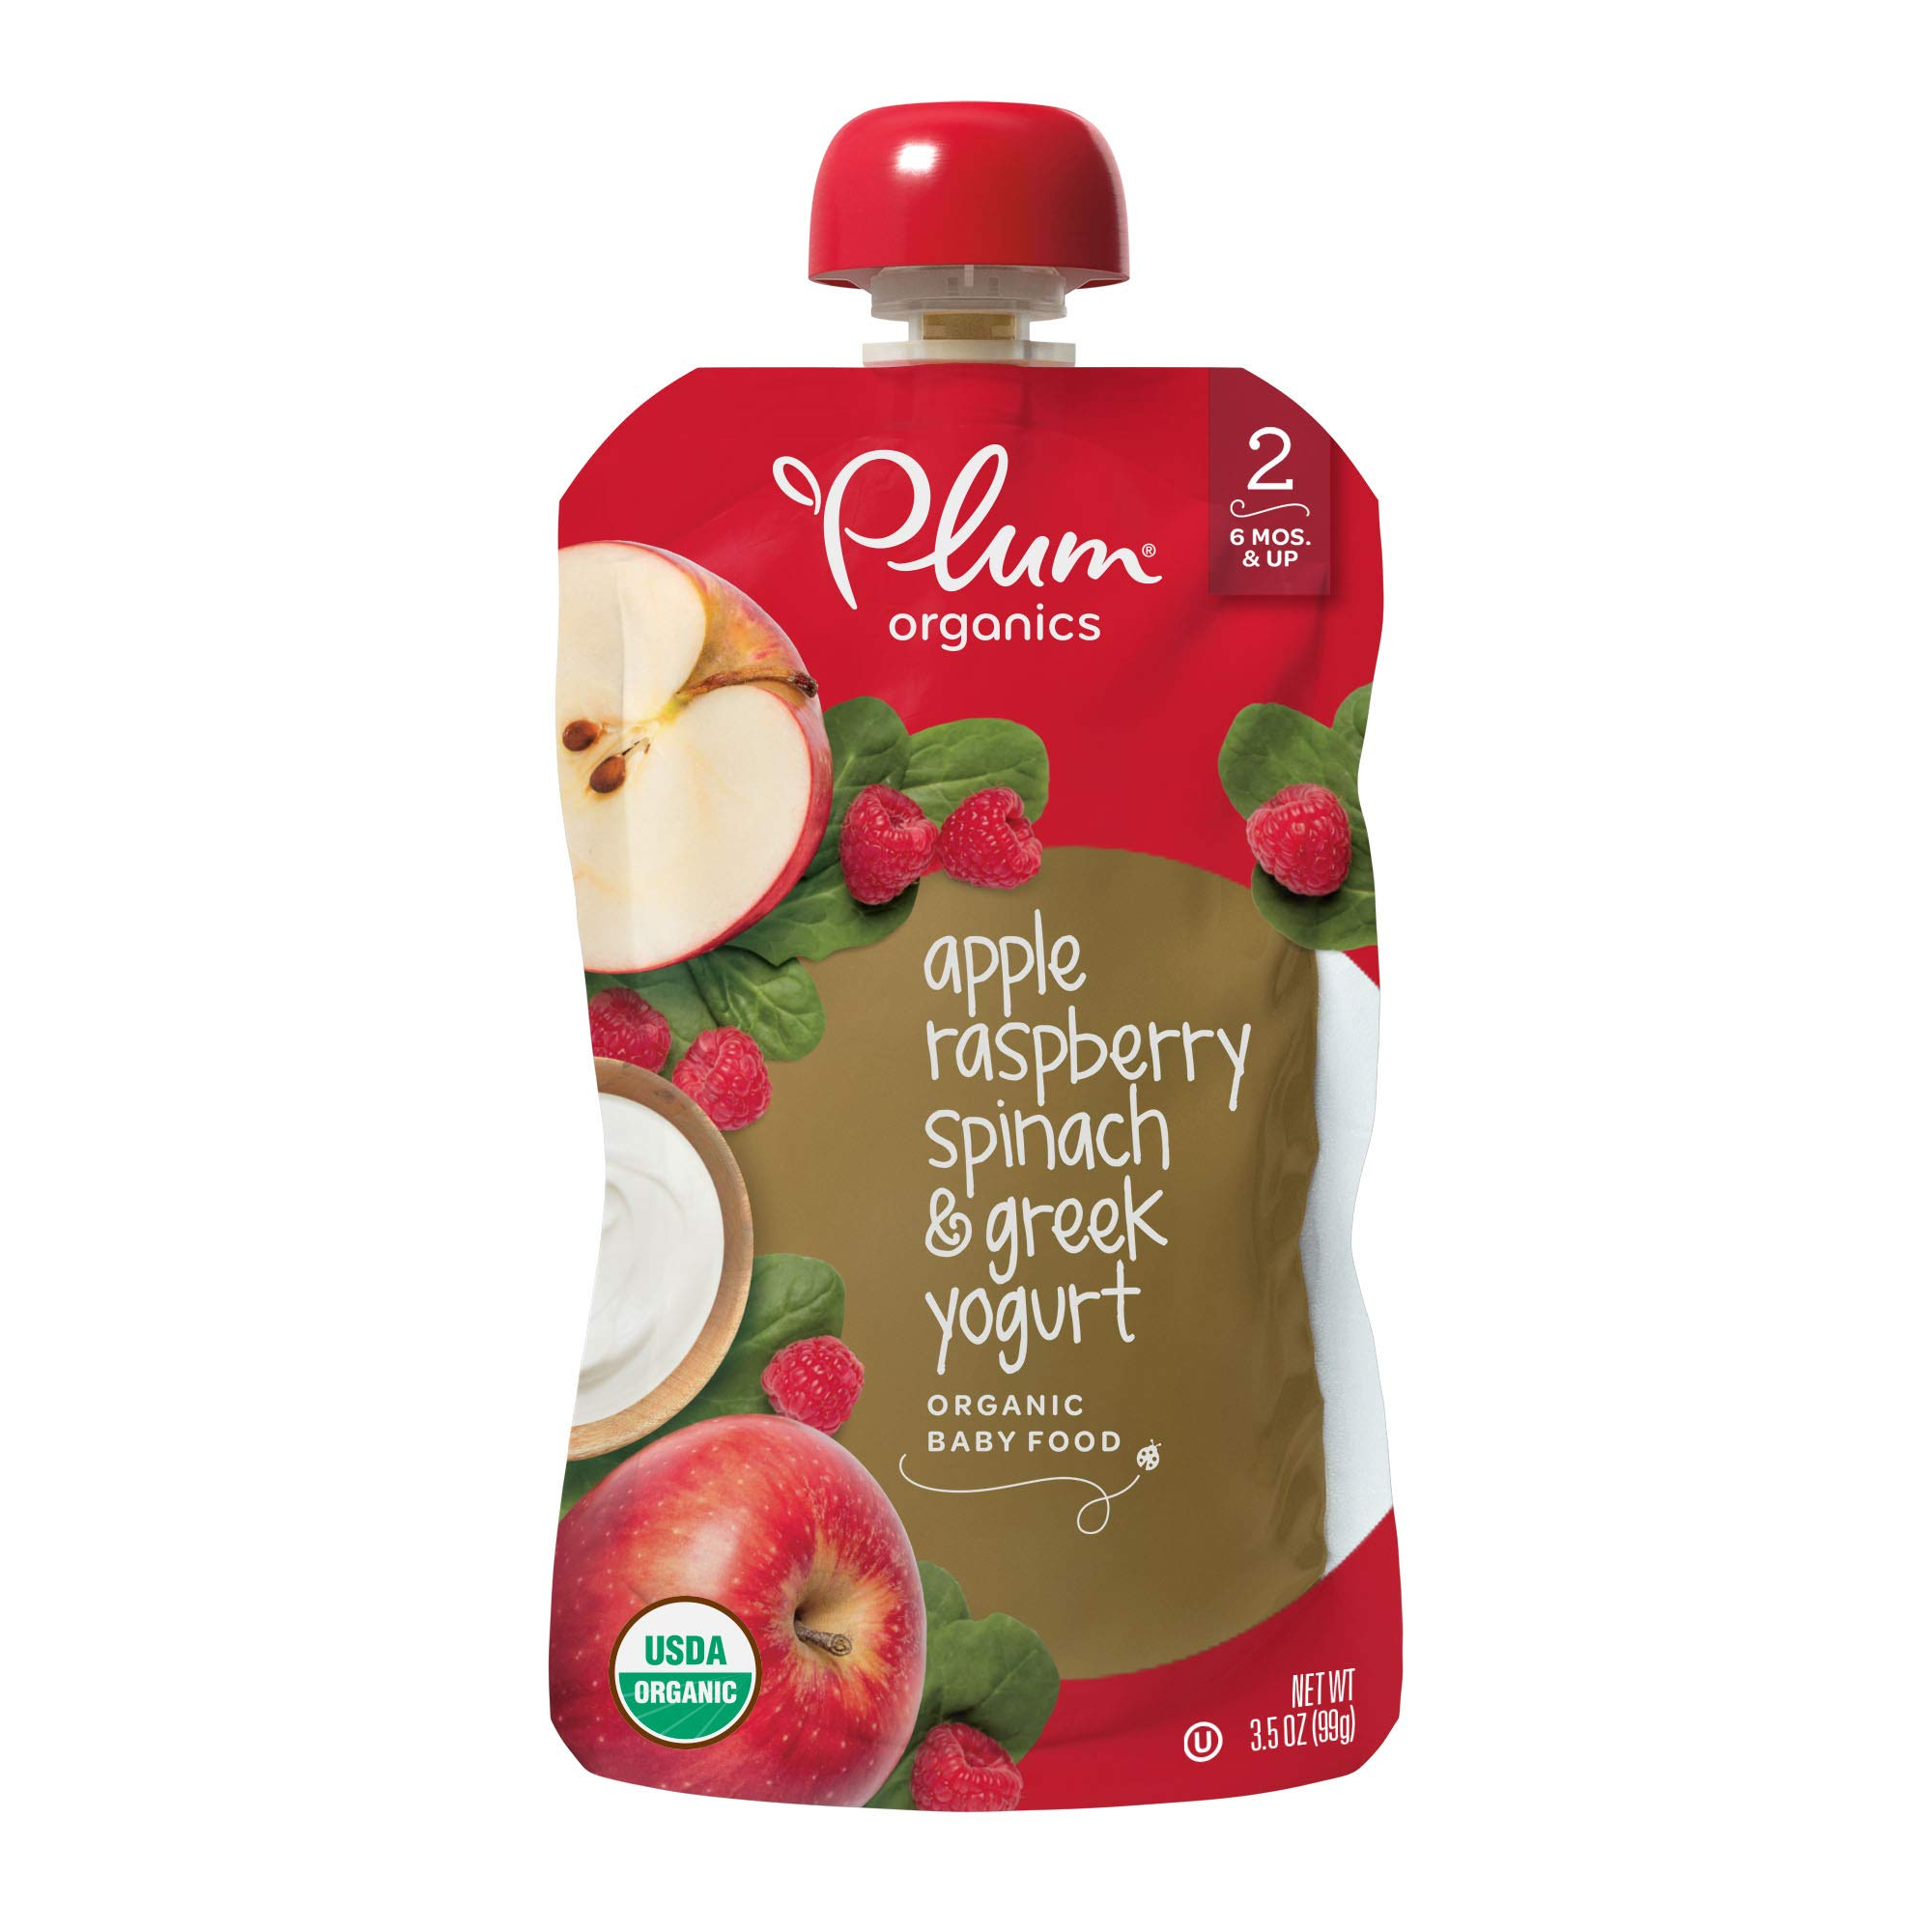 Plum Organics Stage 2 Organic Baby Food, Apple, Raspberry, Spinach and Greek Yogurt, 3.5 ounce pouches (Pack of 12) (Packaging May Vary) by Plum Organics